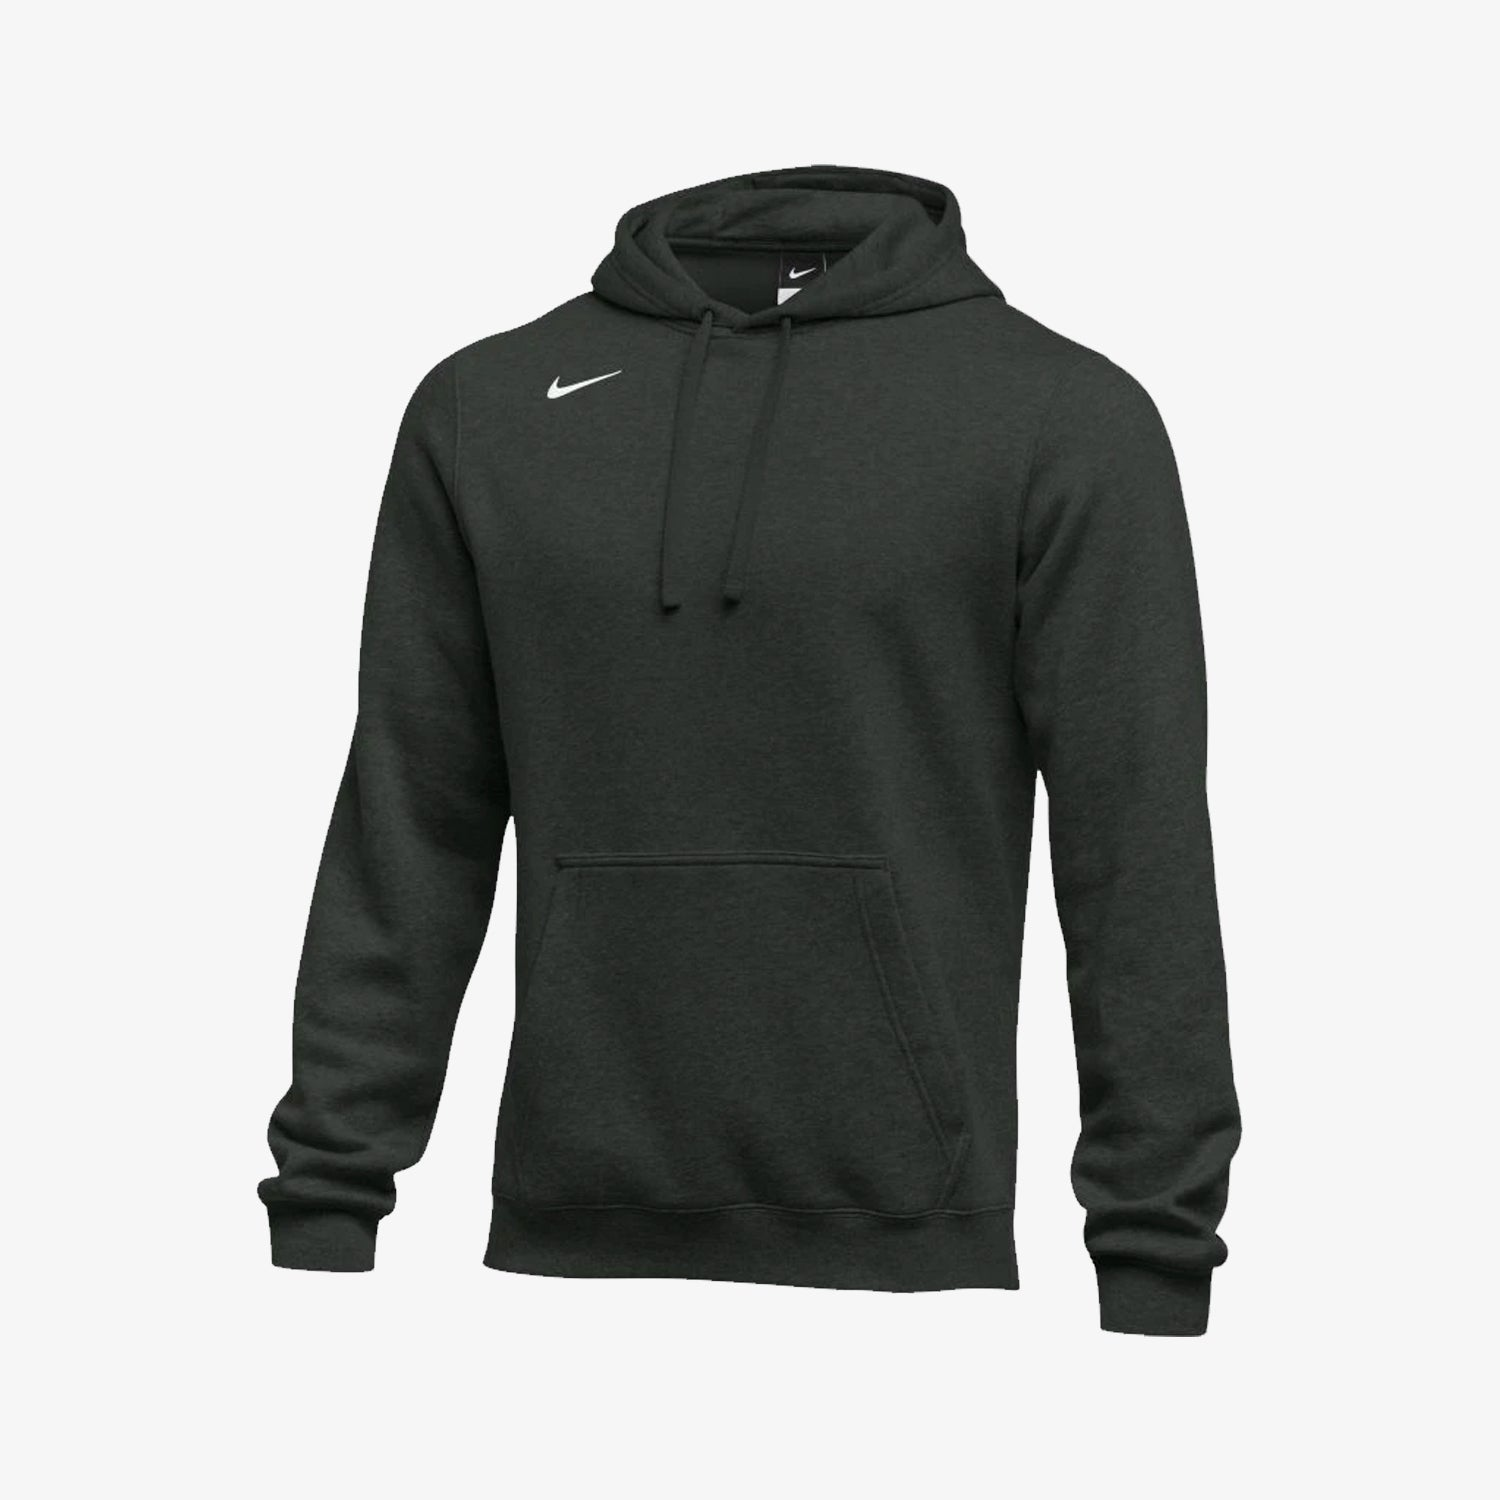 Men's Team Fleece Hoodie - Anthracite